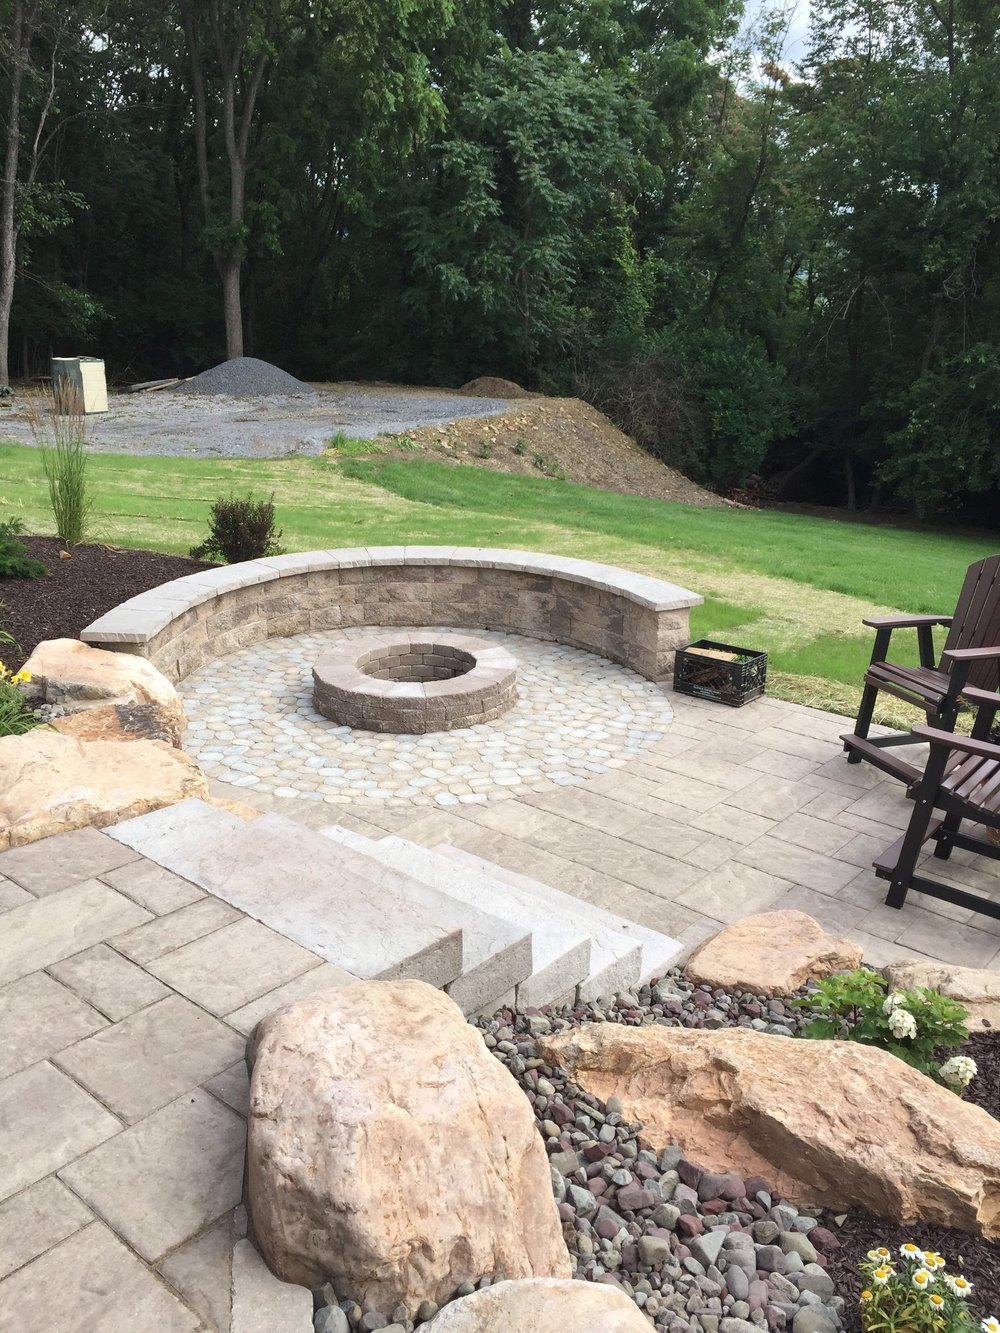 Top patio ideas with a fire pit in Schuylkill County, PA